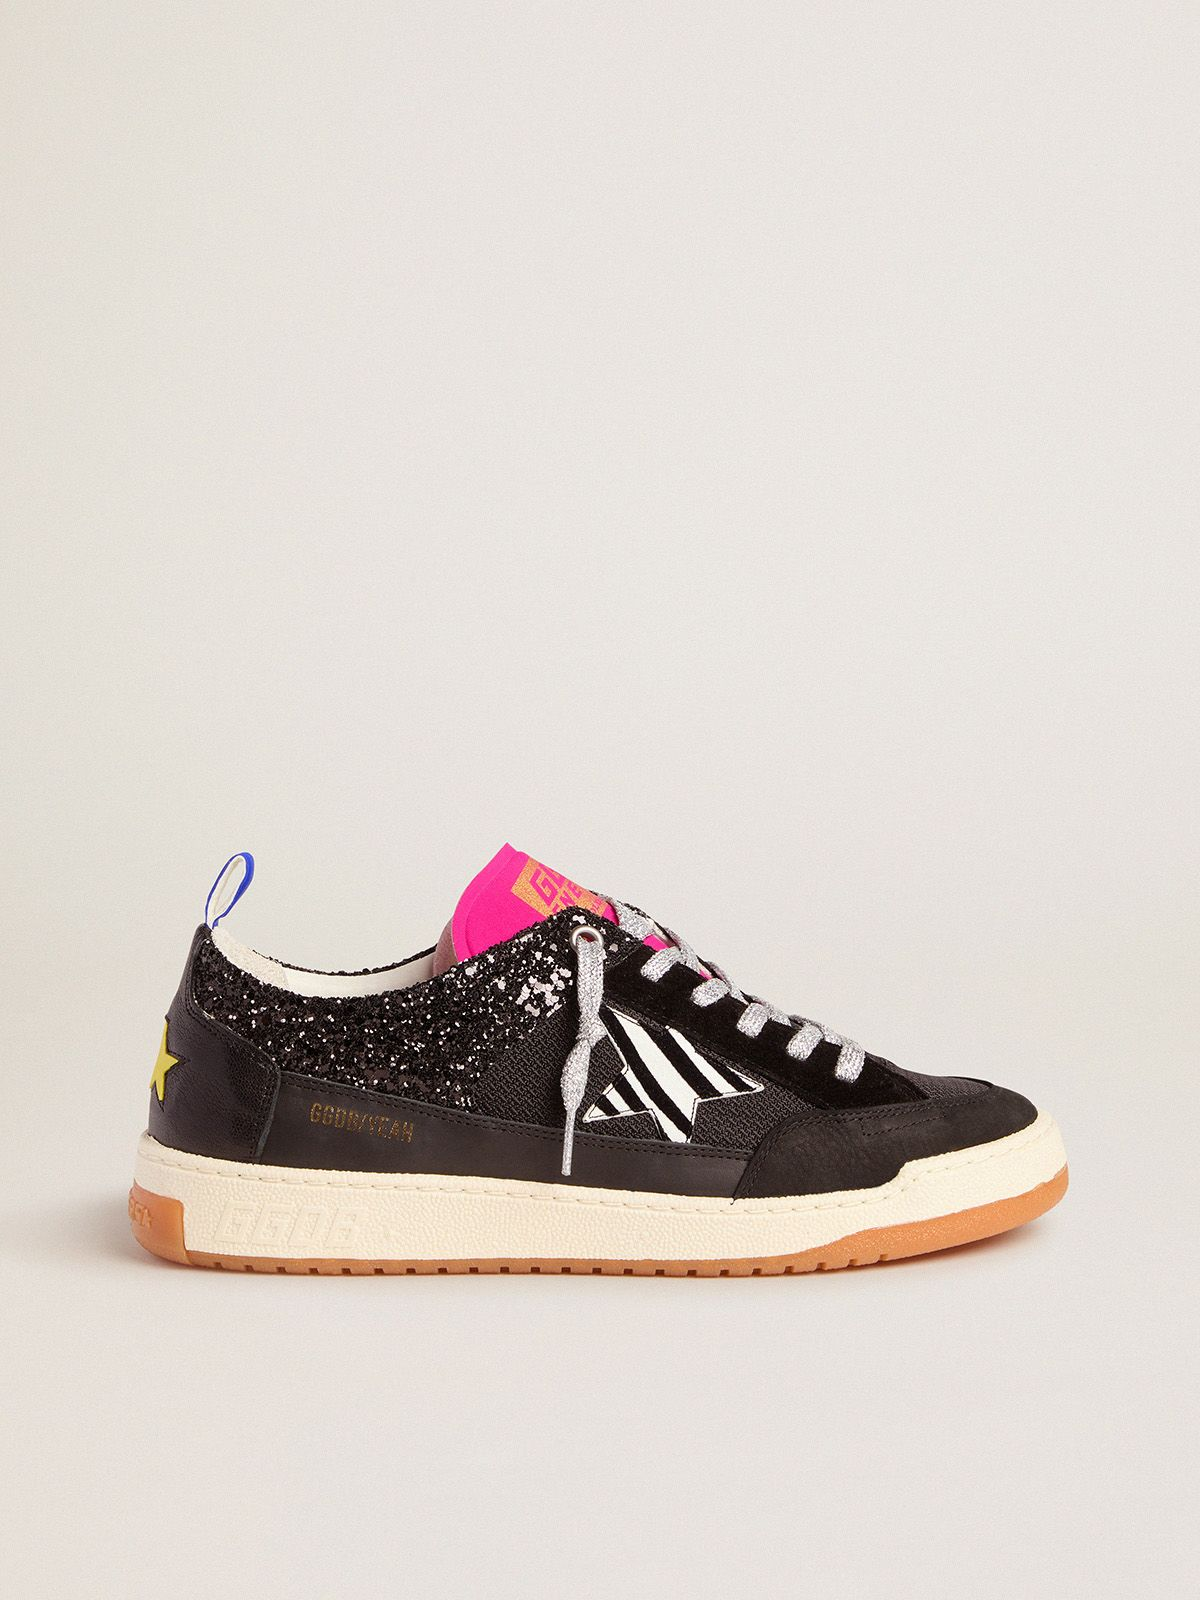 Golden Goose - Men's black Yeah sneakers with glitter and zebra-print star in